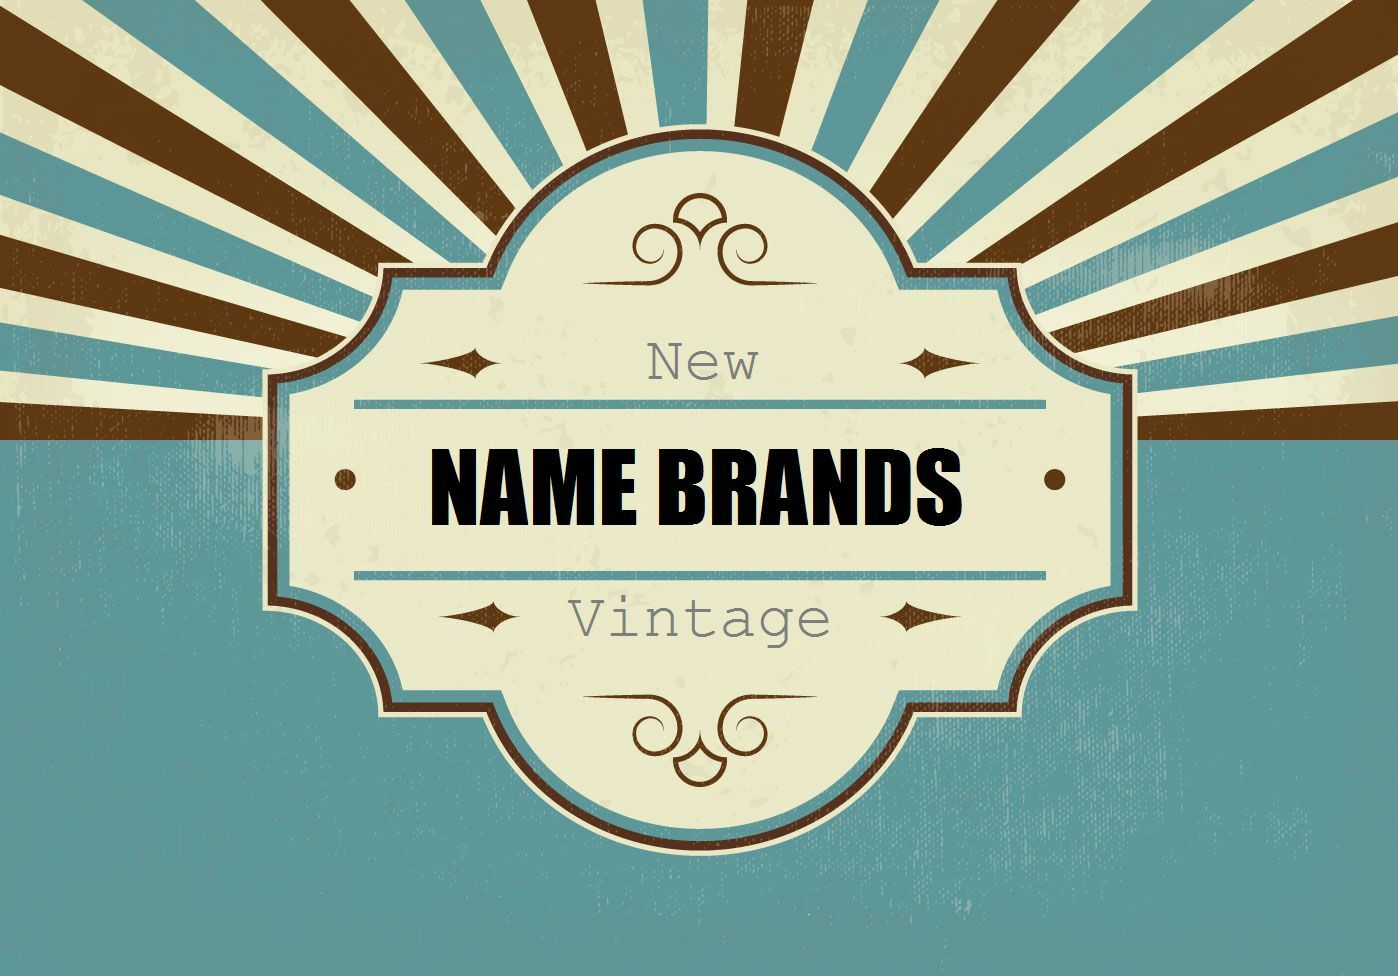 New and Vintage Name Brands